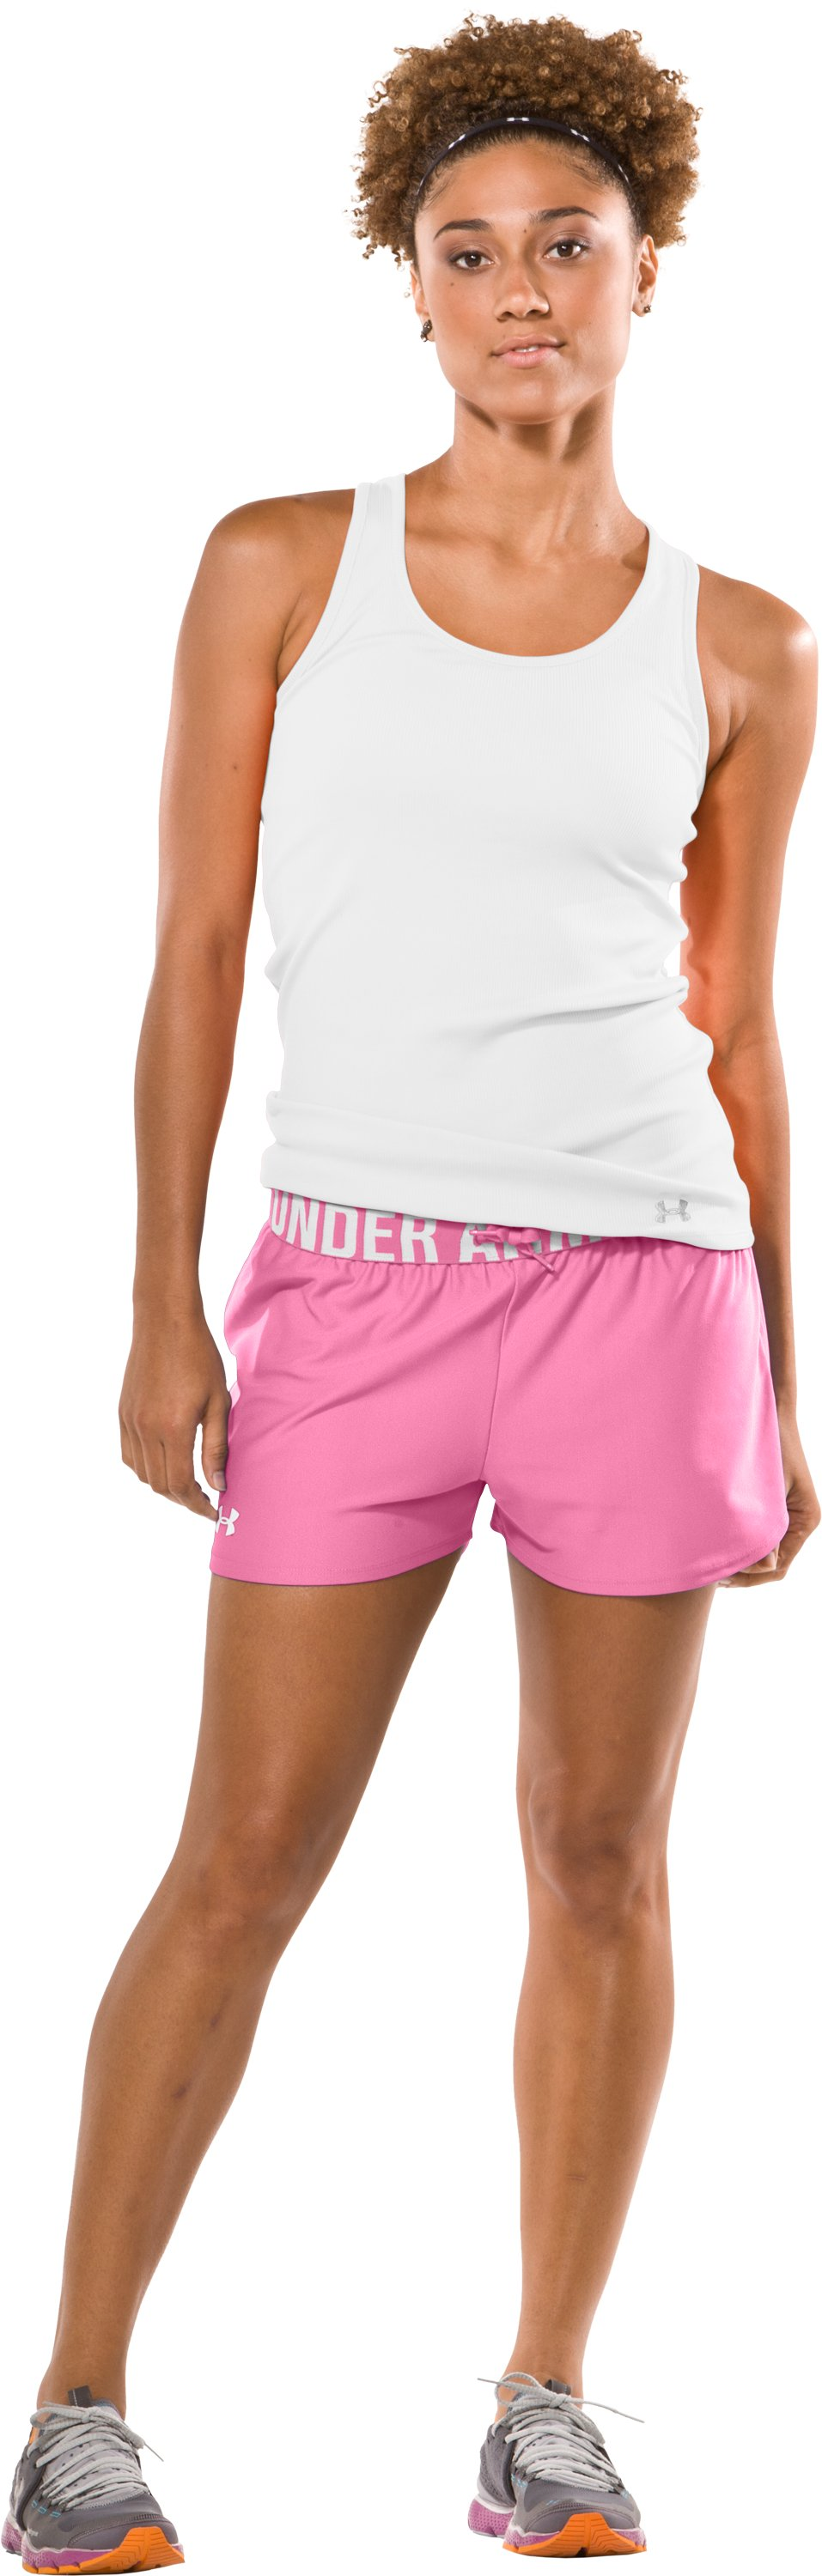 "Women's Play Up 3"" Short, Fluo Pink"